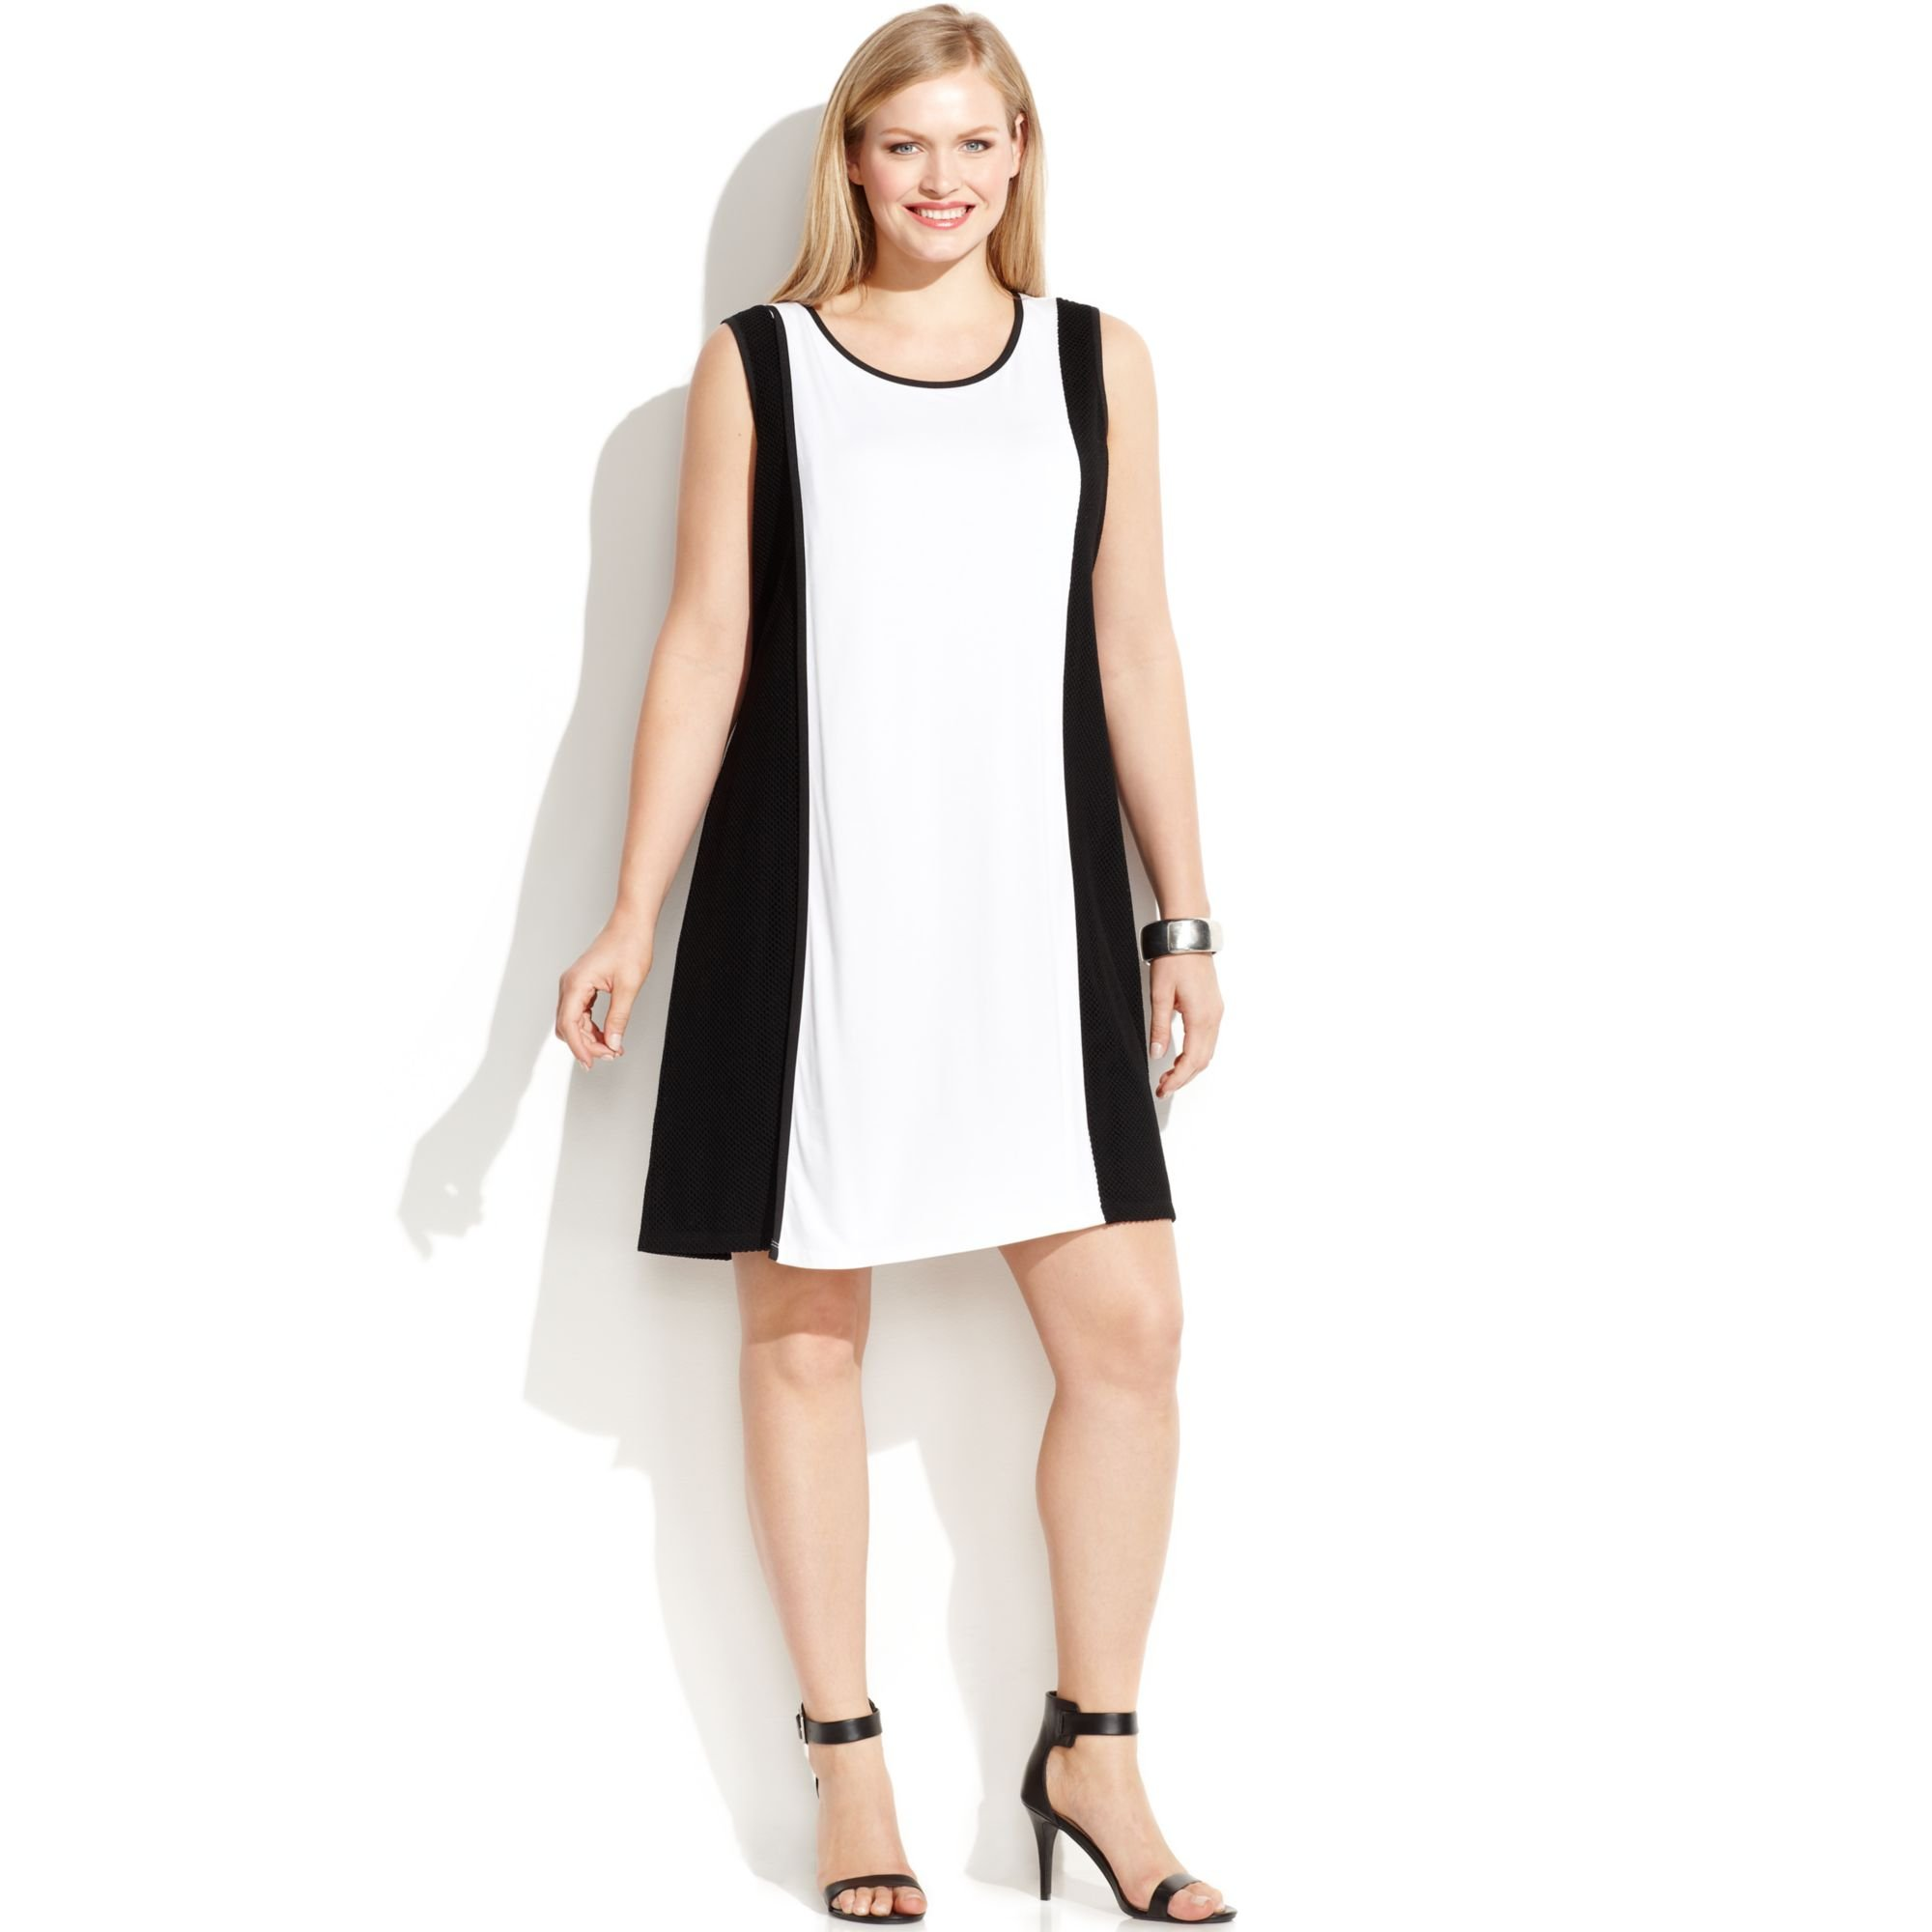 938053373e6 Calvin Klein Plus Size Sleeveless Colorblock Mesh-trim Dress in ...